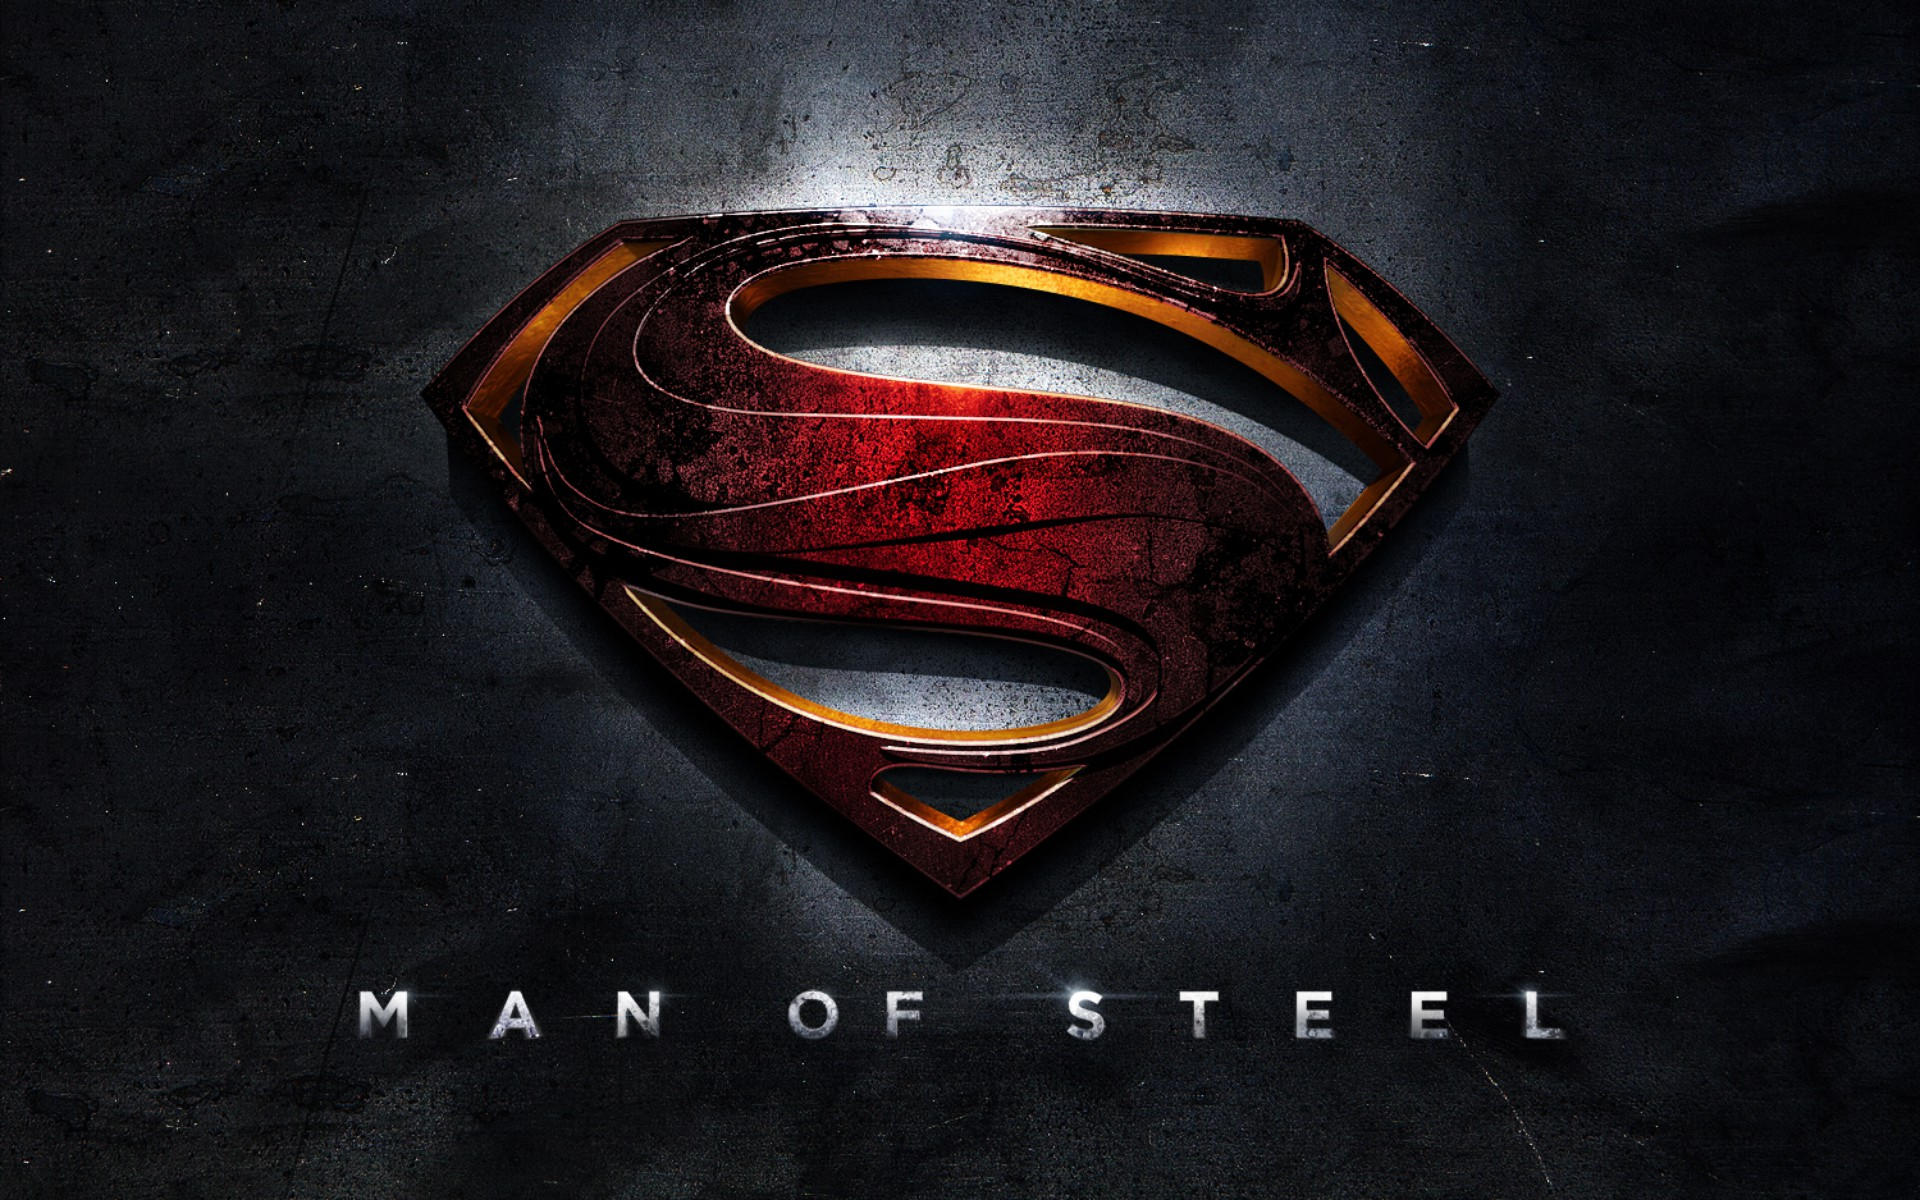 New Man of Steel Trailer Released Today